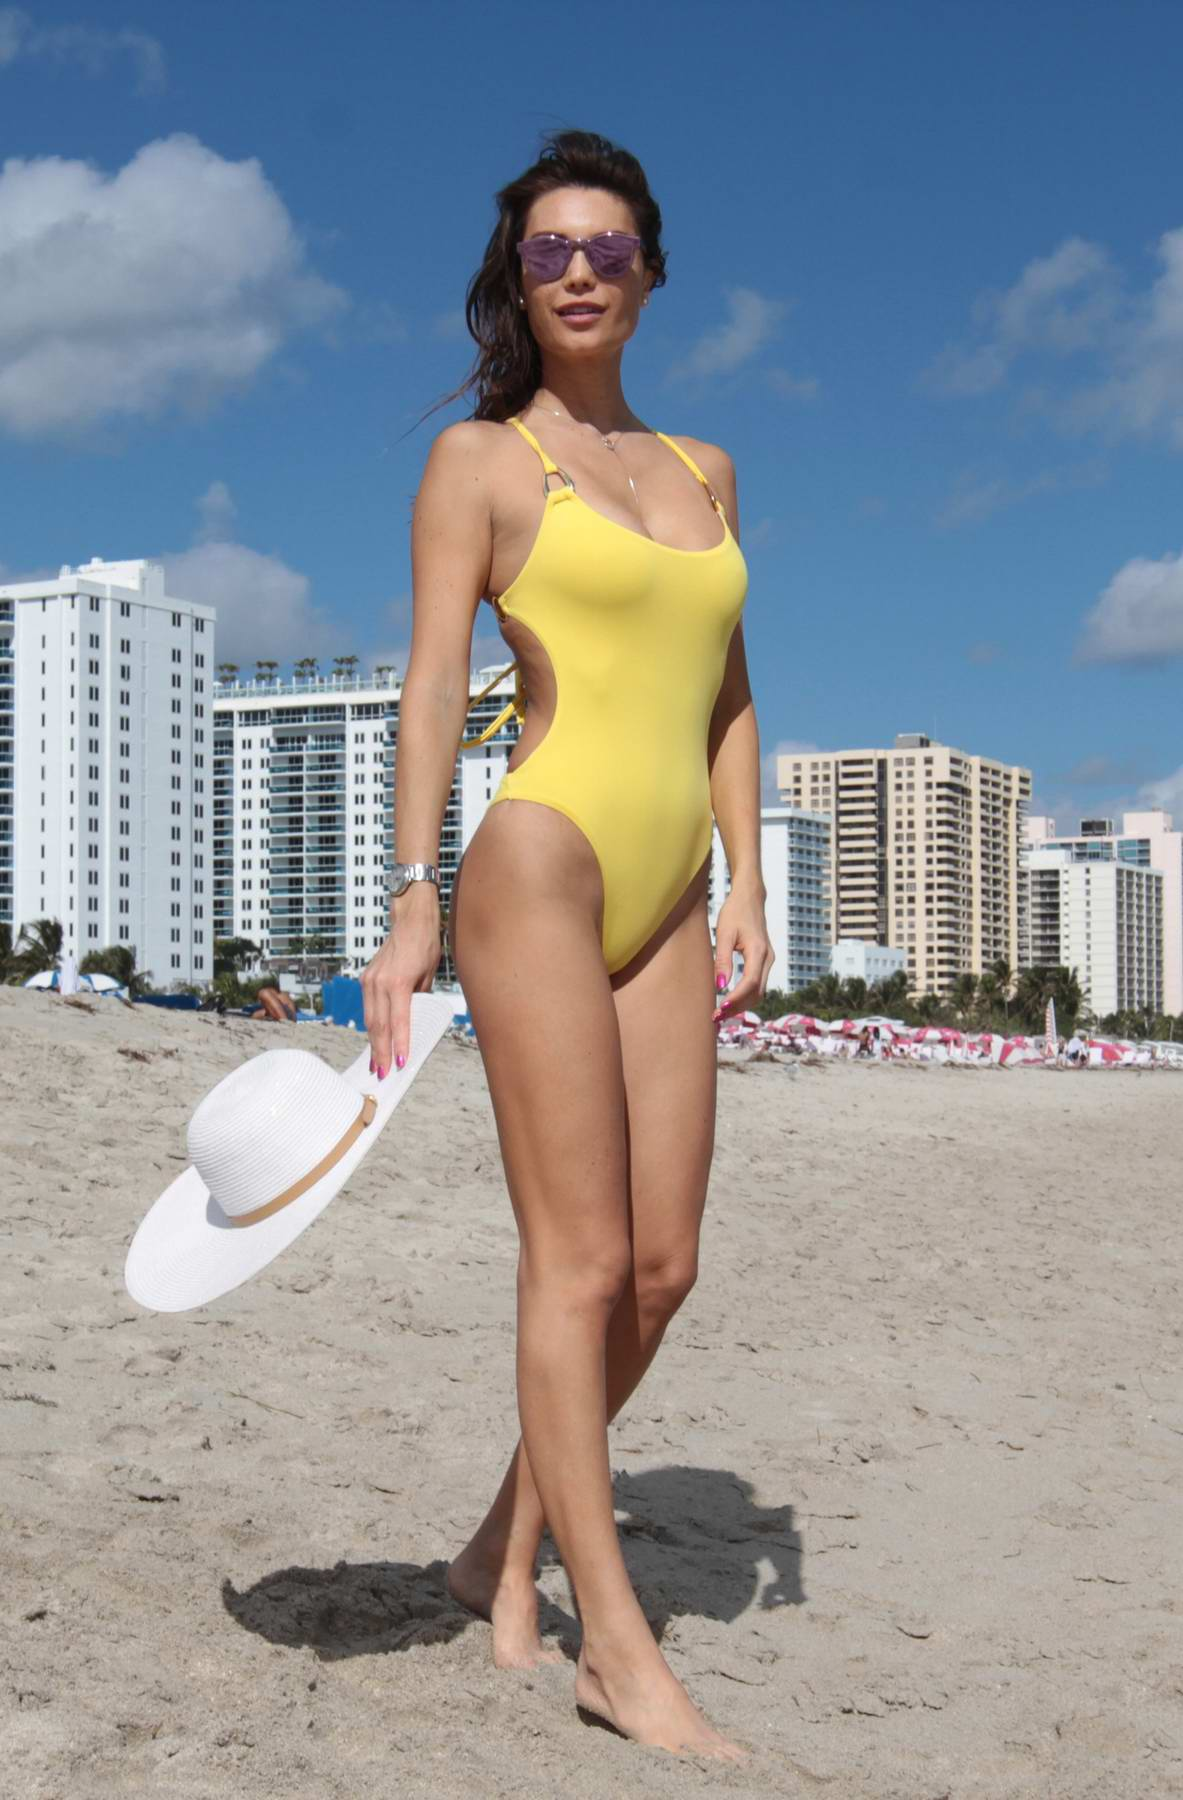 Julia Pereira in a yellow swimsuit on the beach in Miami, Florida